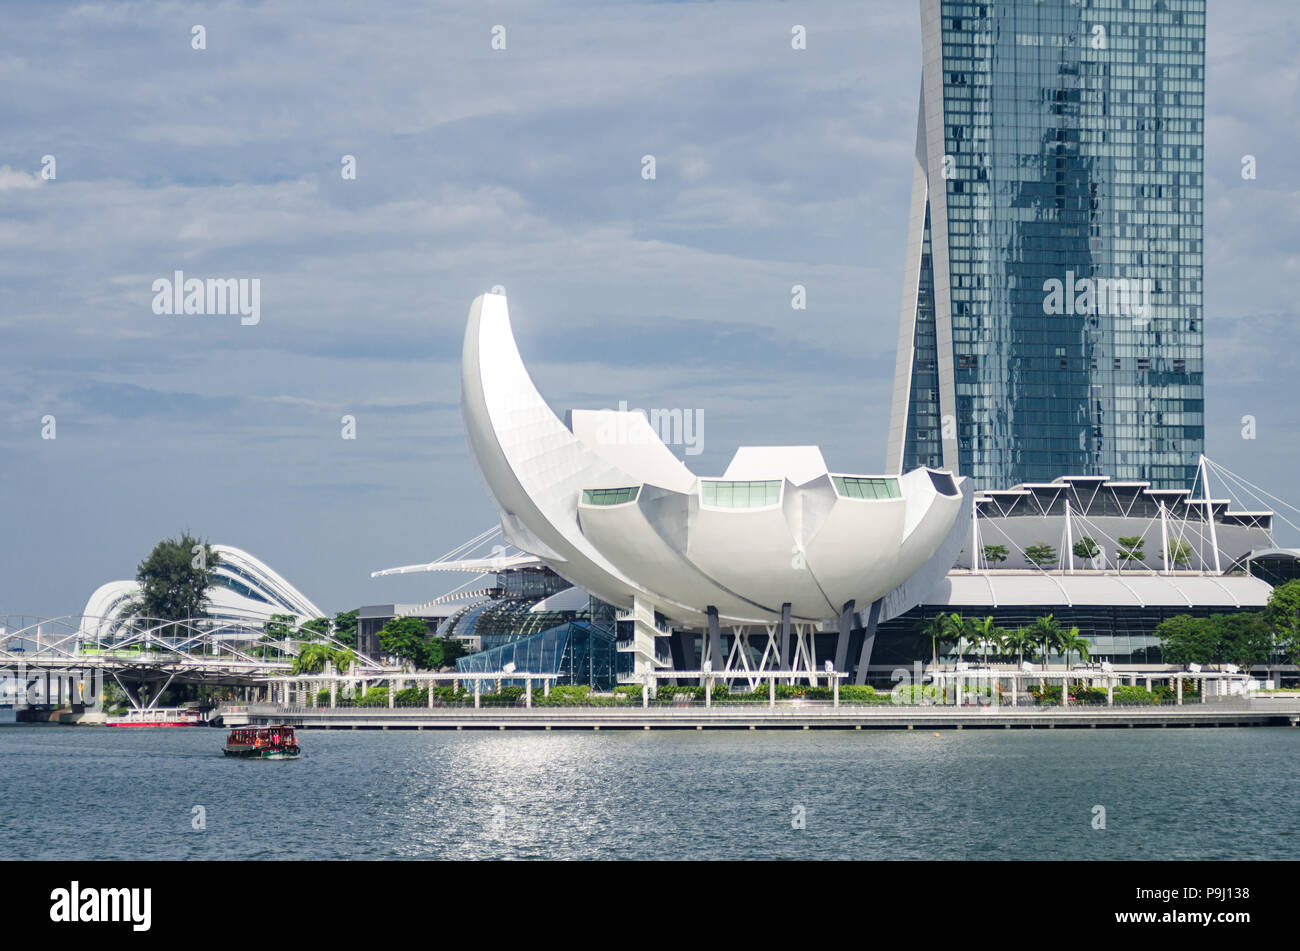 Beautiful day with singapore art science museum as seen from jubilee beautiful day with singapore art science museum as seen from jubilee bridge the architecture is said to be a form reminiscent of a lotus flower izmirmasajfo